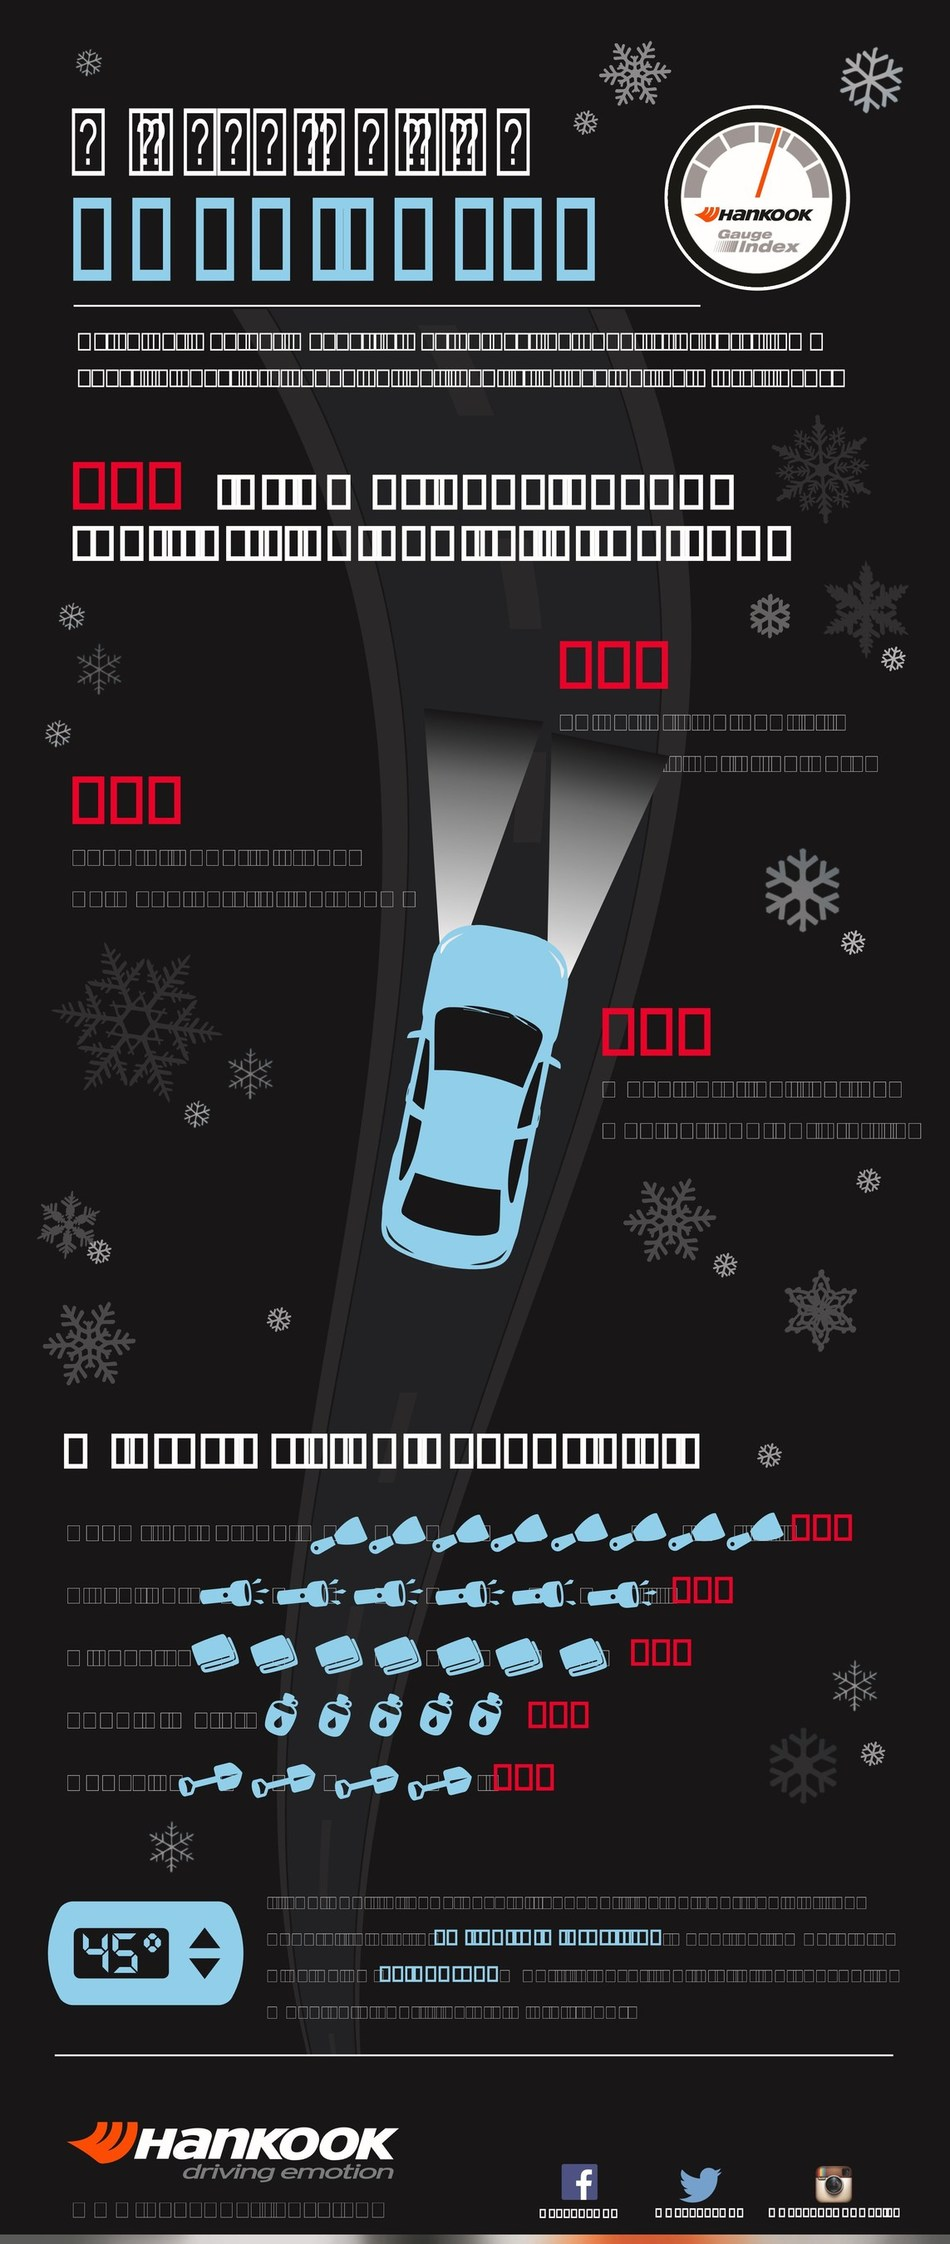 The Hankook Tire Gauge Index reveals how drivers change their behavior during the winter.